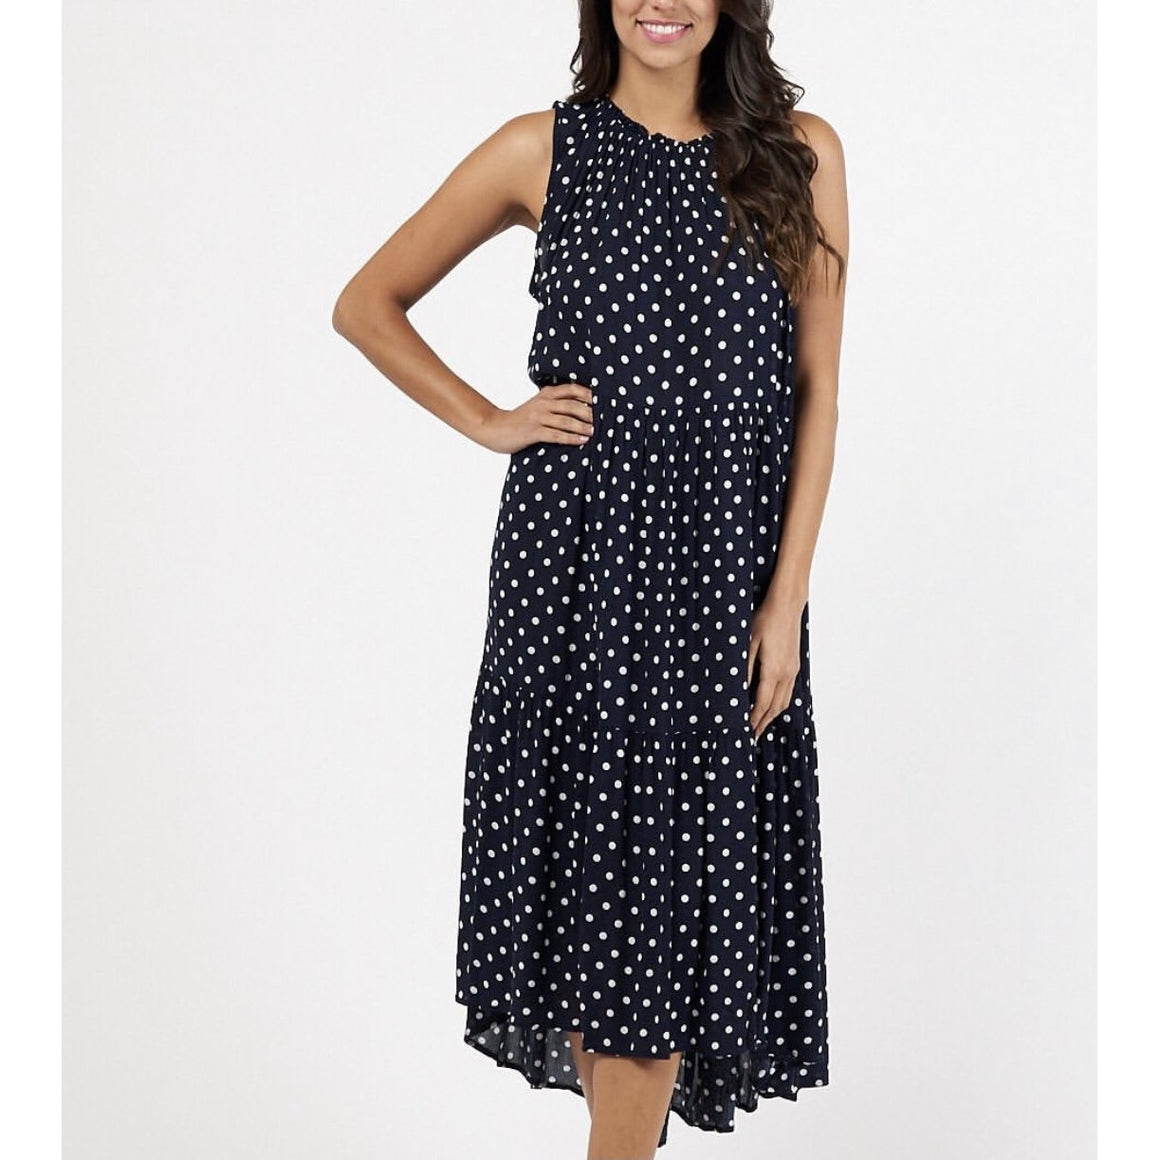 SPLICE NAVY SPOT DRESS (4849228054582)